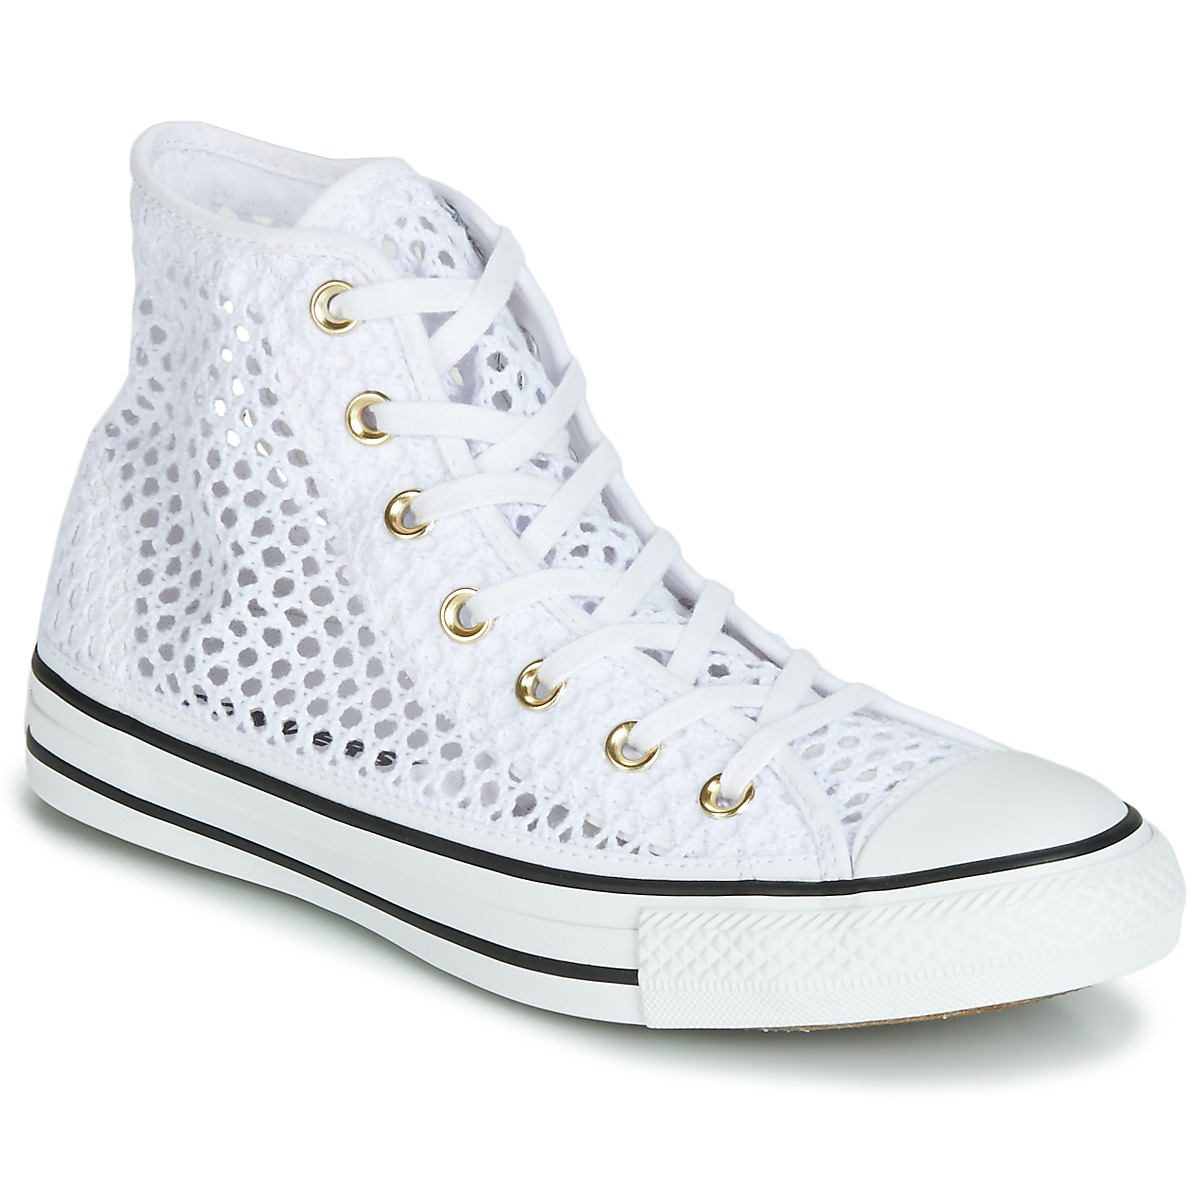 e2dd7882ca4 Converse CHUCK TAYLOR ALL STAR HANDMADE CROCHET HI White - Free delivery |  Spartoo NET ! - Shoes High top trainers Women USD/$89.00